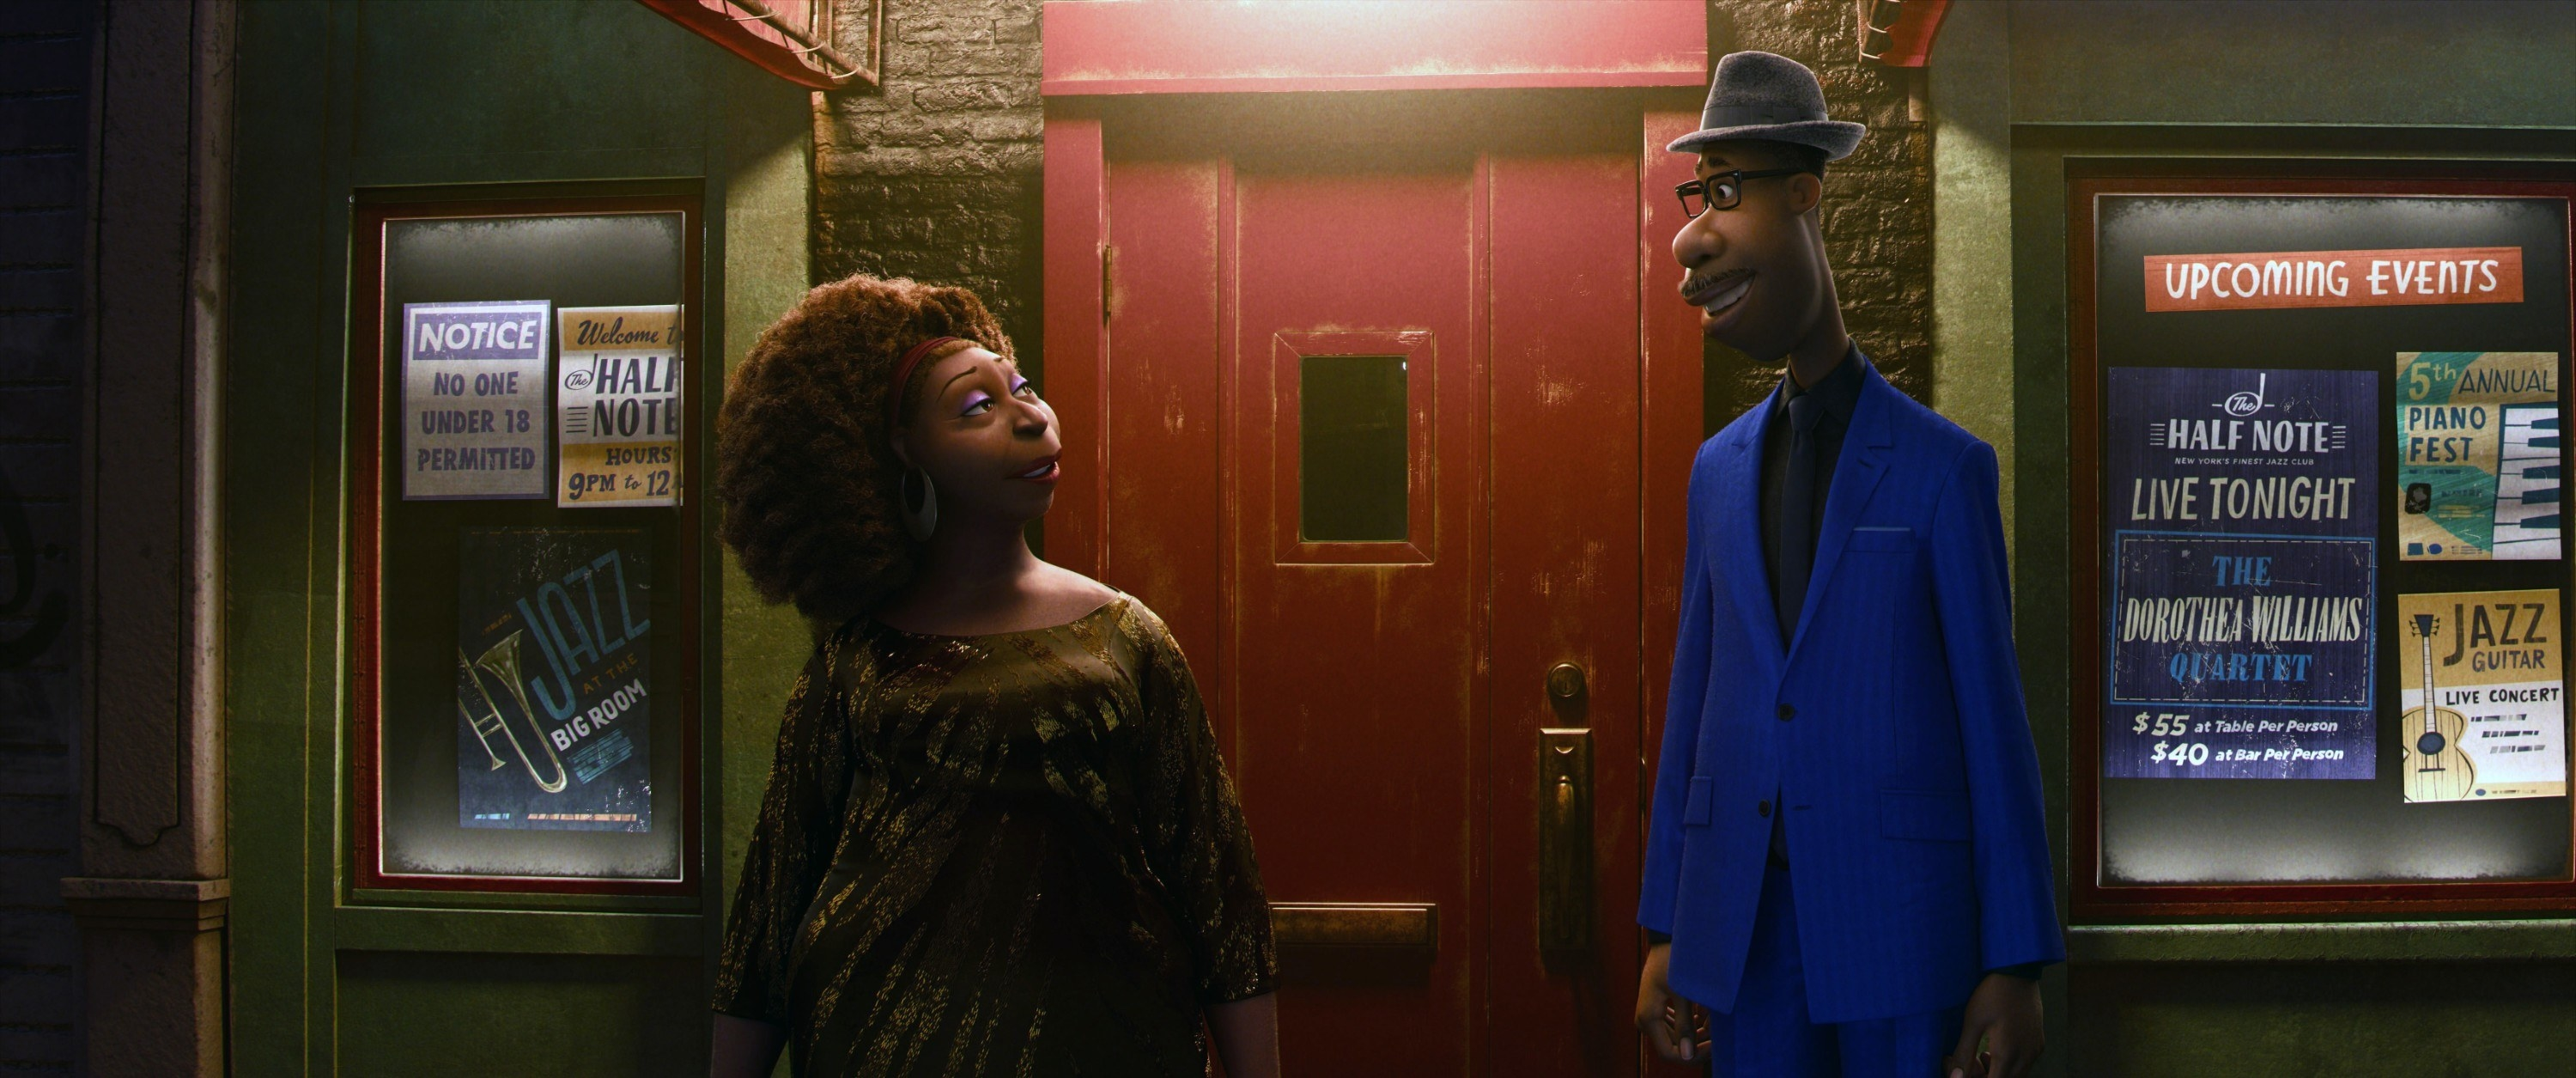 Dorothea Williams and Joe Gardner standing outside of a jazz club